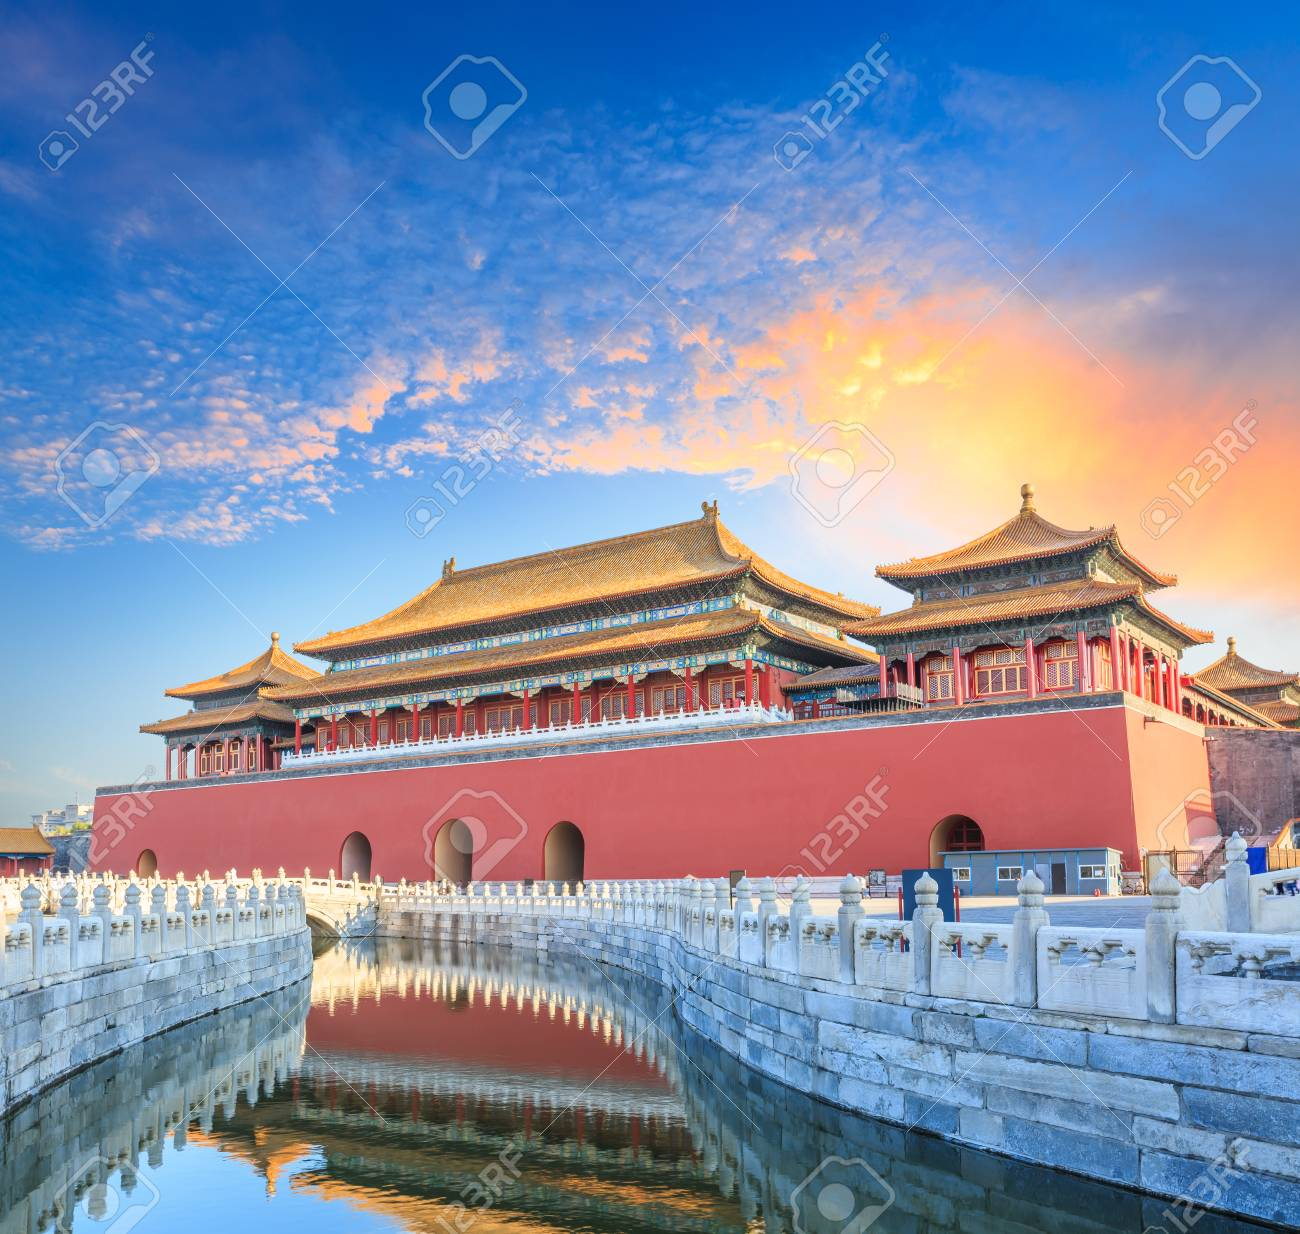 ancient royal palaces of the Forbidden City in Beijing,China - 74552793